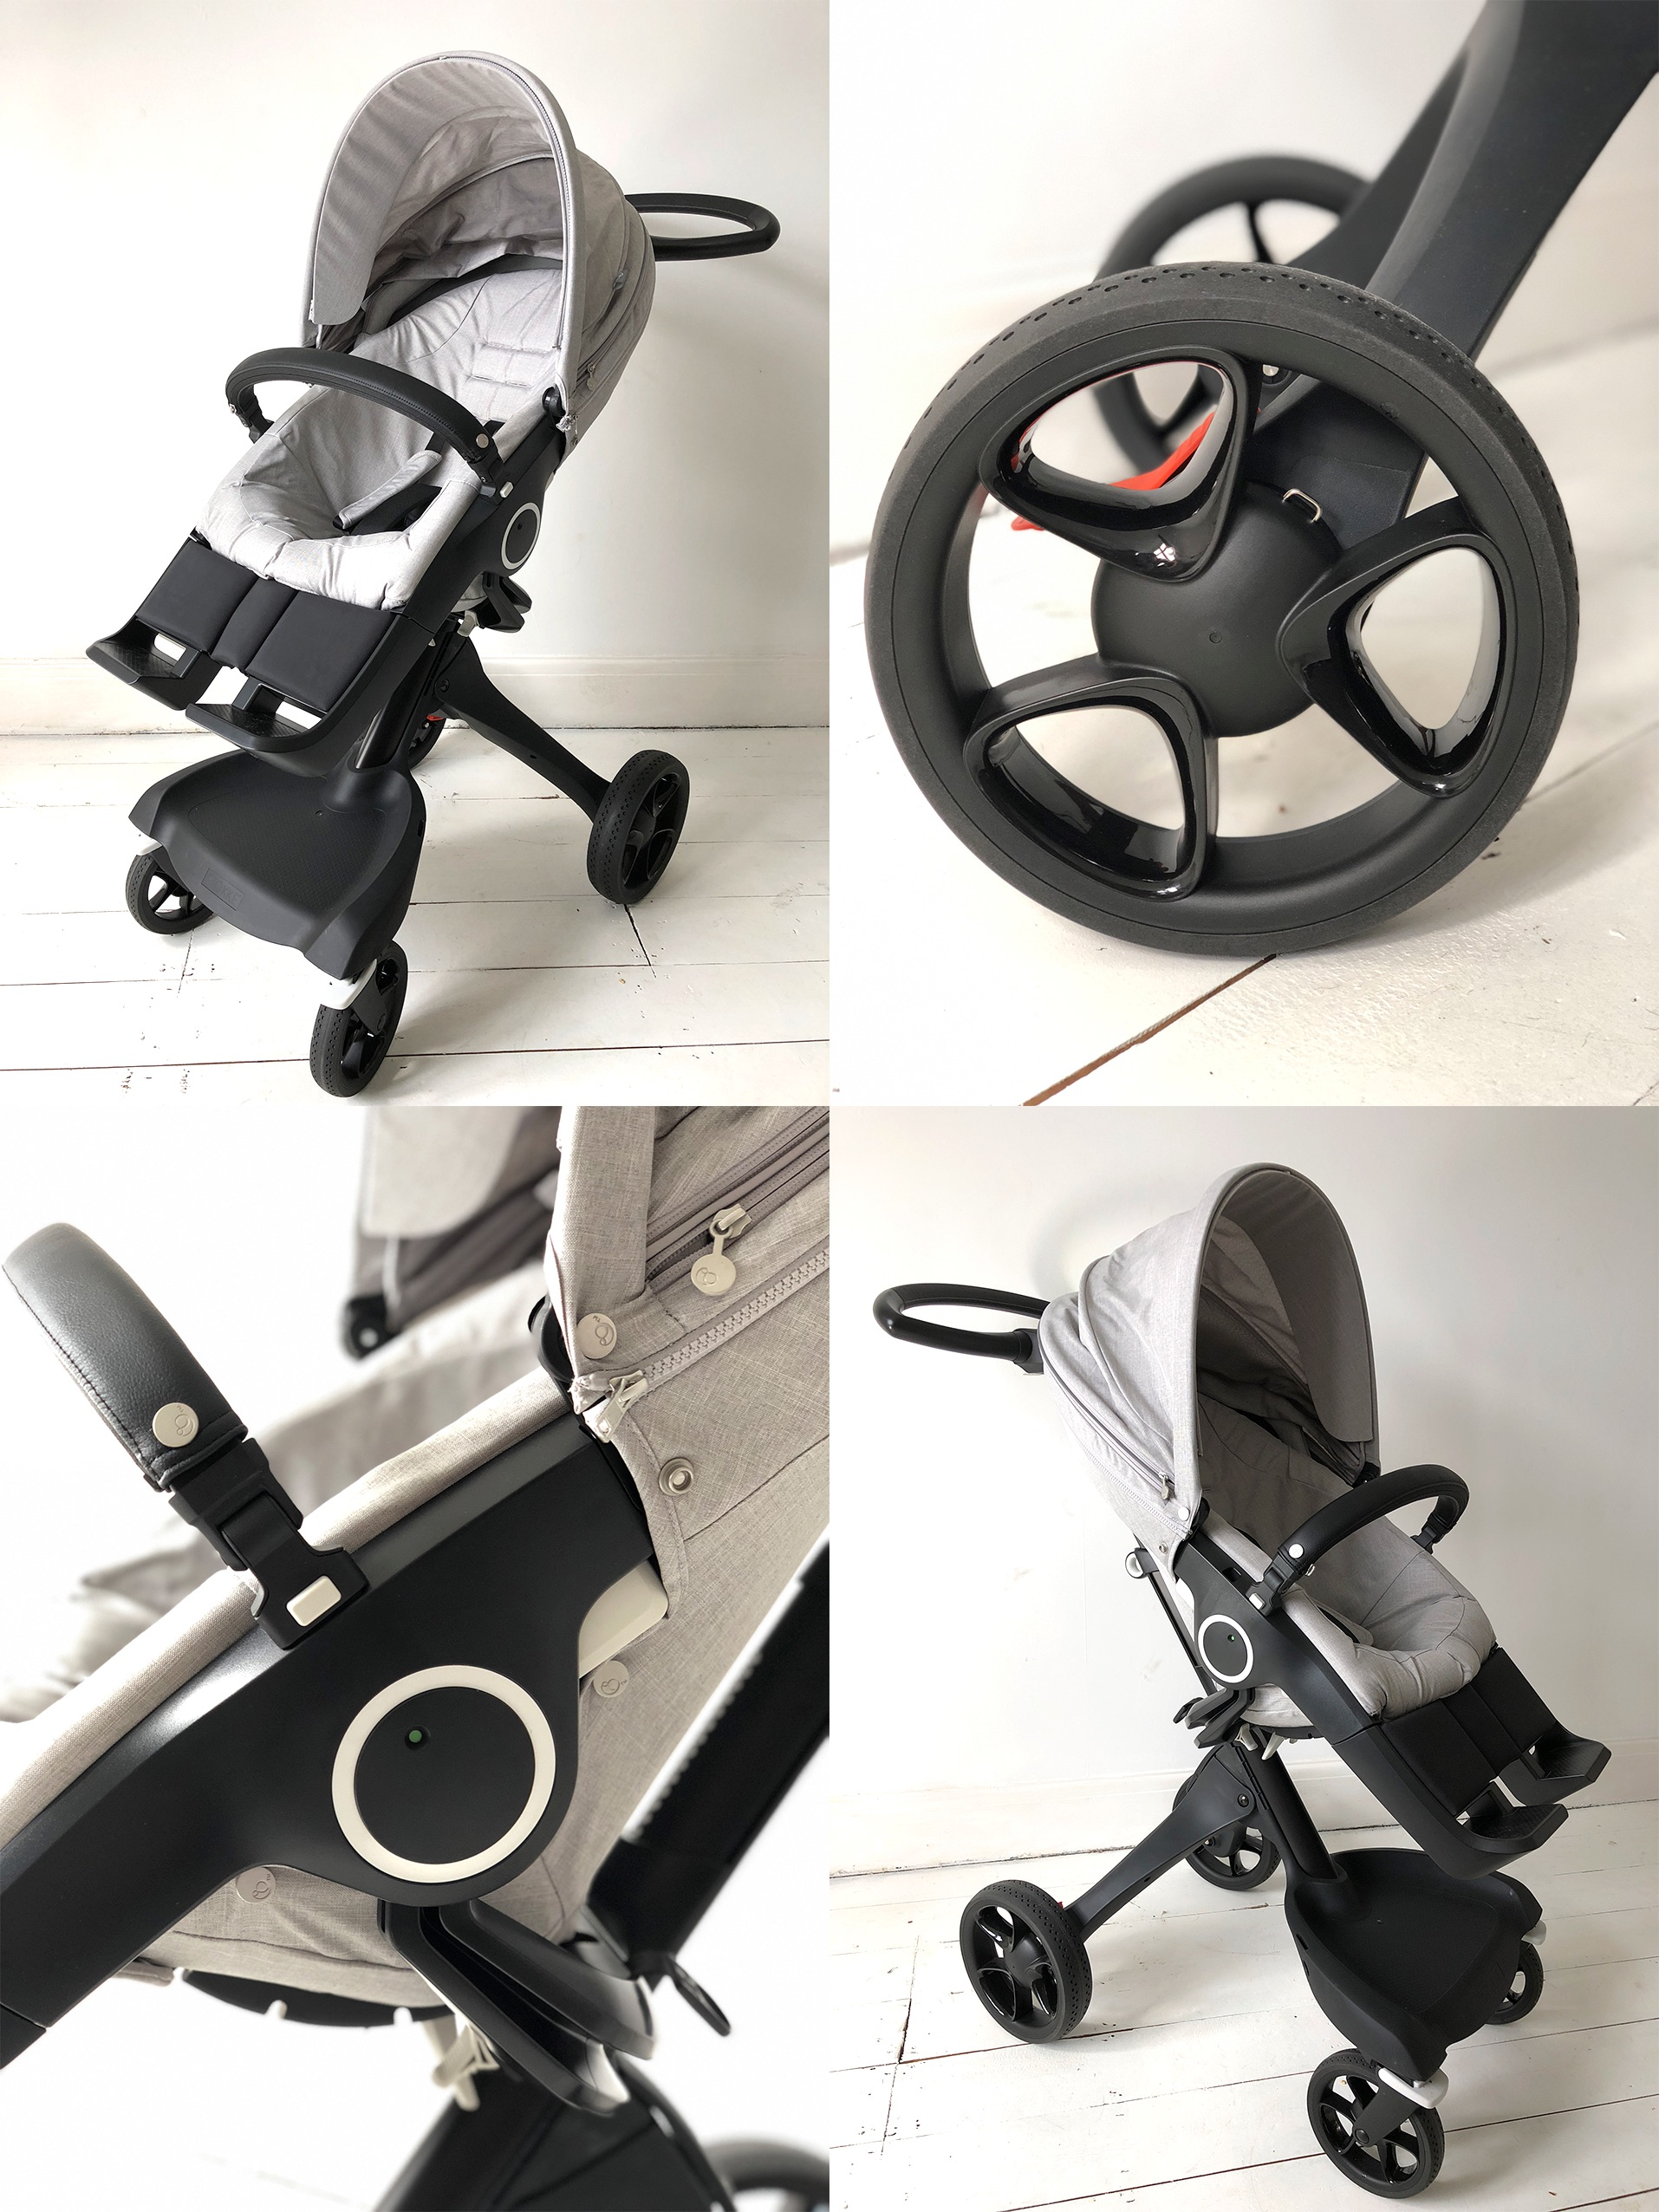 Dadsnet reviews 6 of the UK's best pushchairs in 2018, Stokke Xplory%, product-review%